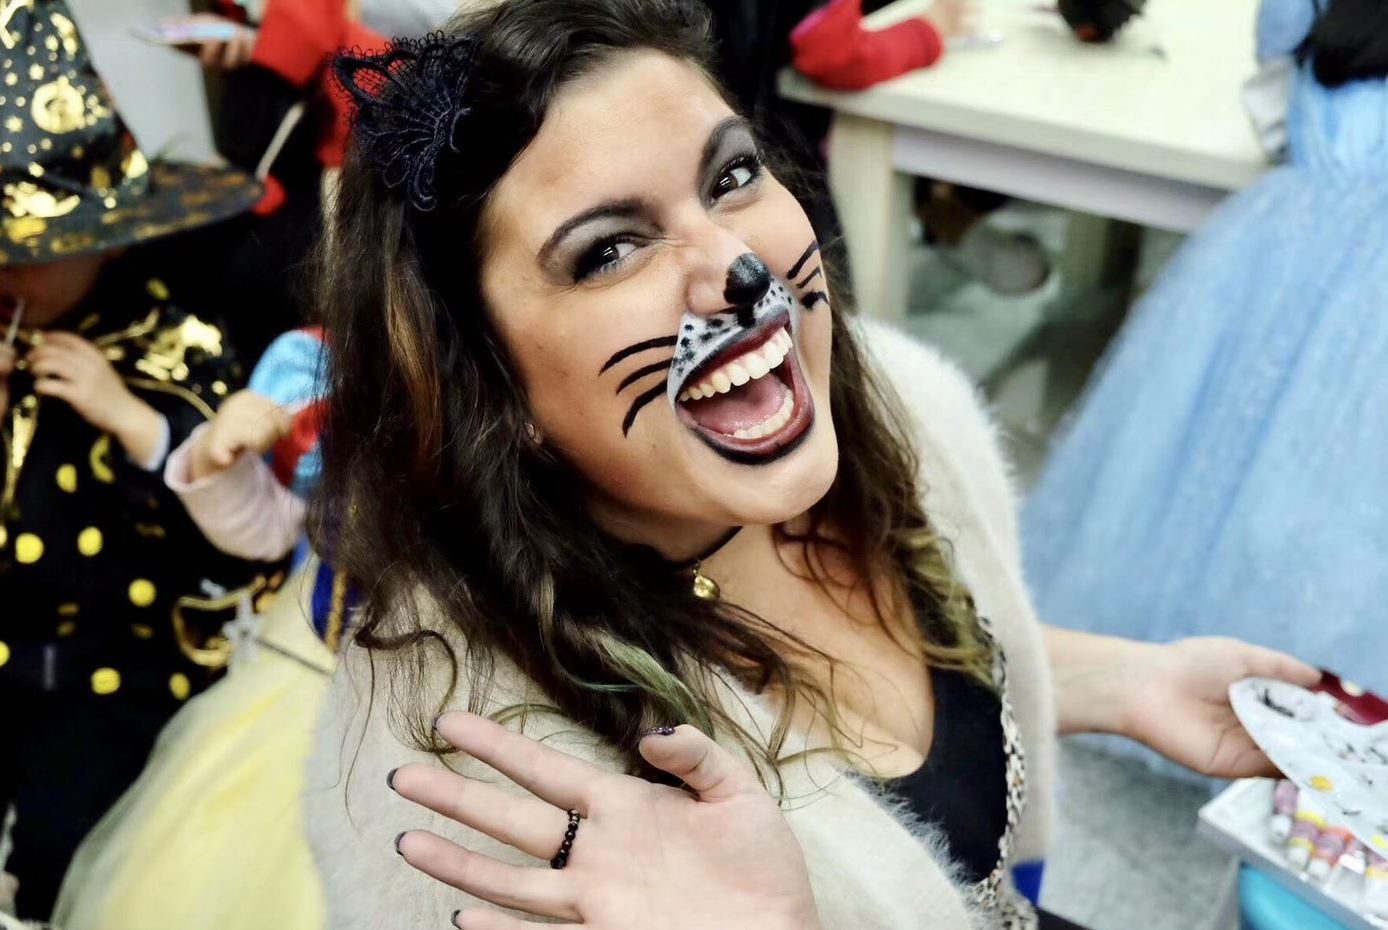 Ms. Annie Wall with her face painted like a cat